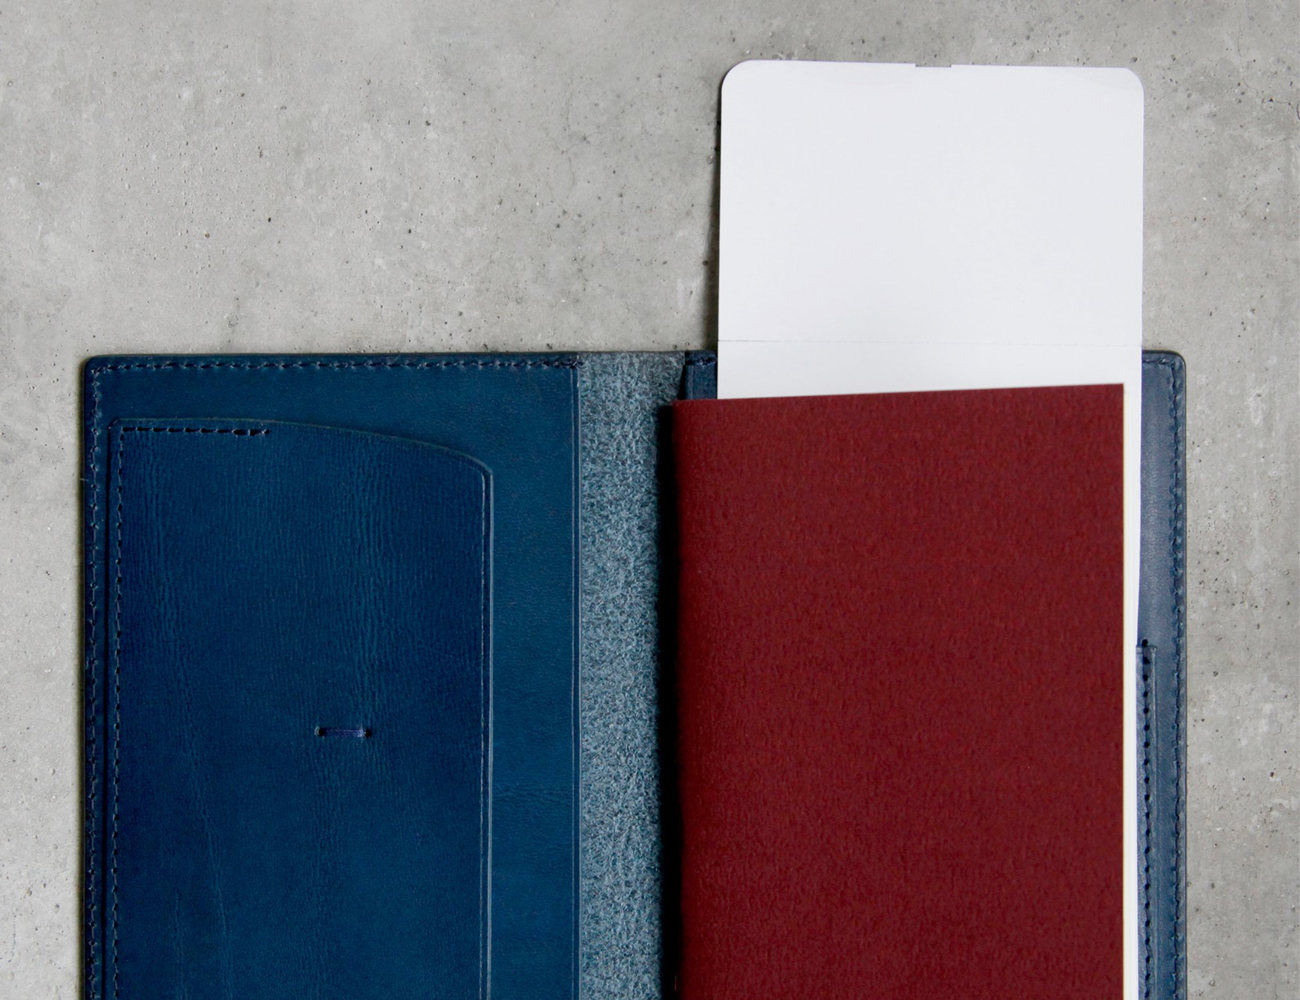 The Raven Passport Wallet by DRY & CO